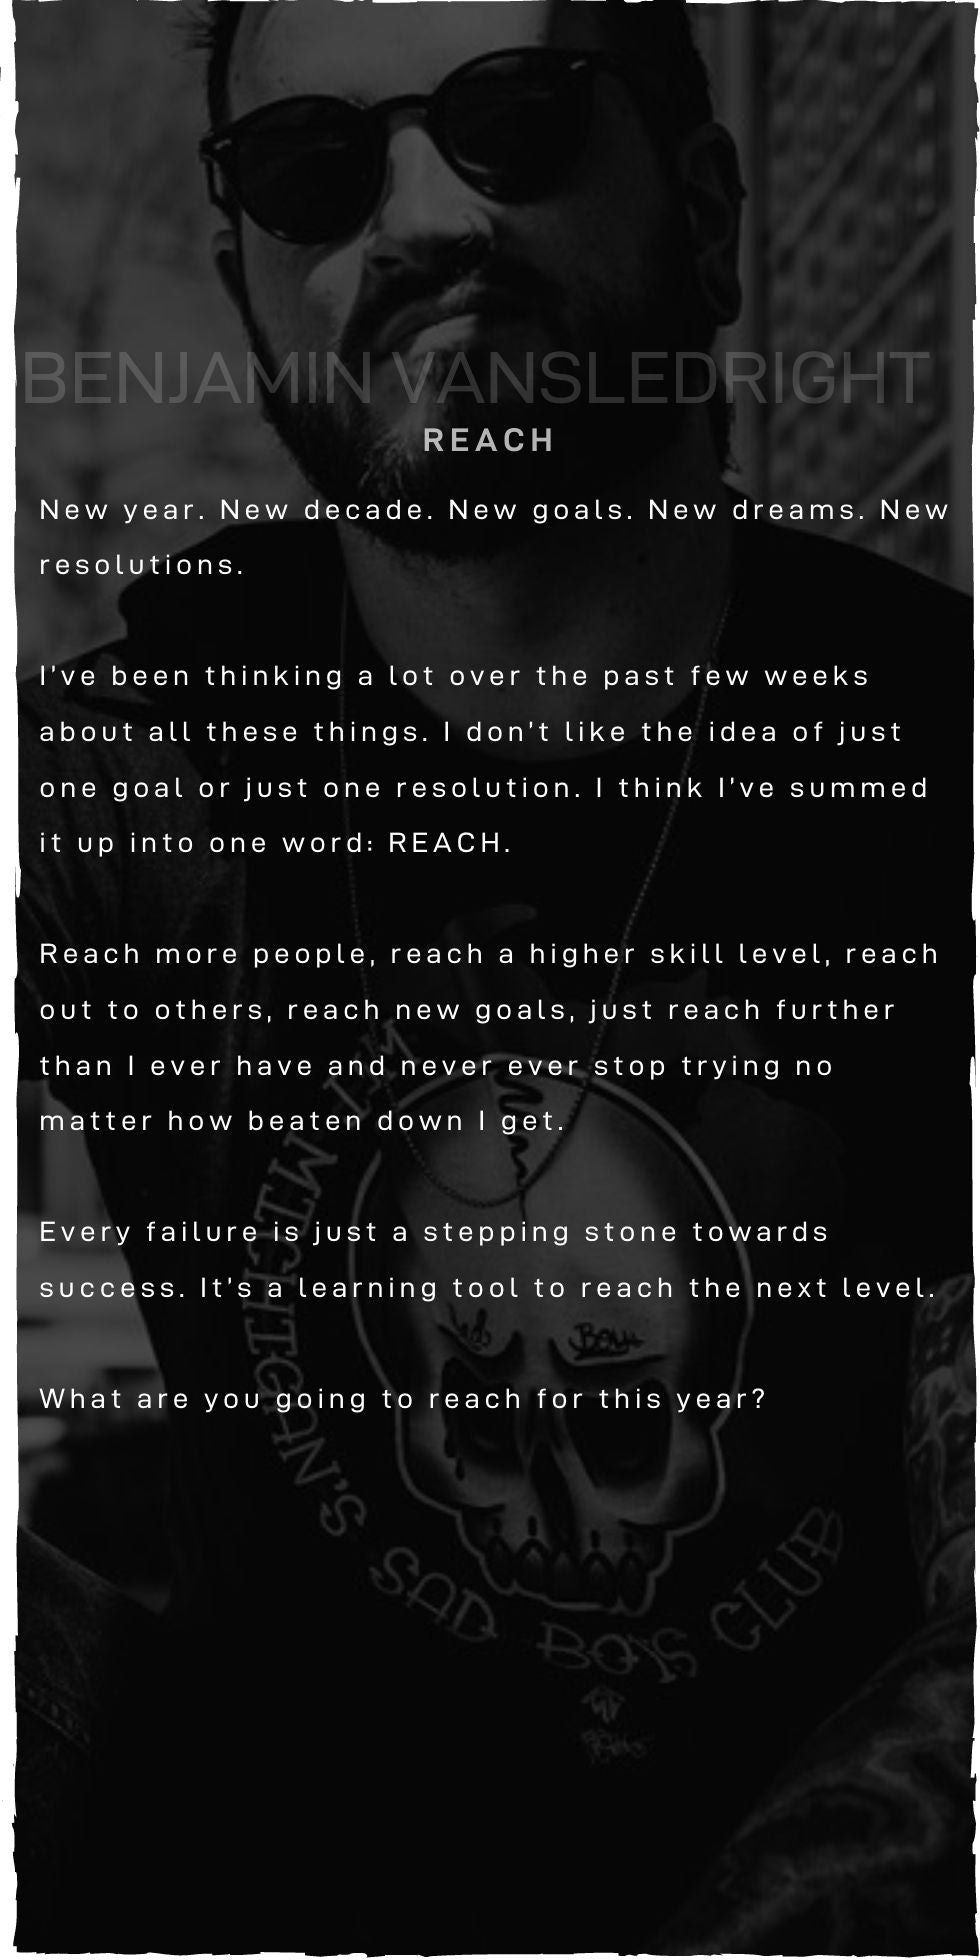 New year. New decade. New goals. New dreams. New resolutions.  I've been thinking a lot over the past few weeks about all these things. I don't like the idea of just one goal or just one resolution. I think I've summed it up into one word: REACH.  Reach more people, reach a higher skill level, reach out to others, reach new goals, just reach further than I ever have and never ever stop trying no matter how beaten down I get.  Every failure is just a stepping stone towards success. It's a learning tool to reach the next level.  What are you going to reach for this year?